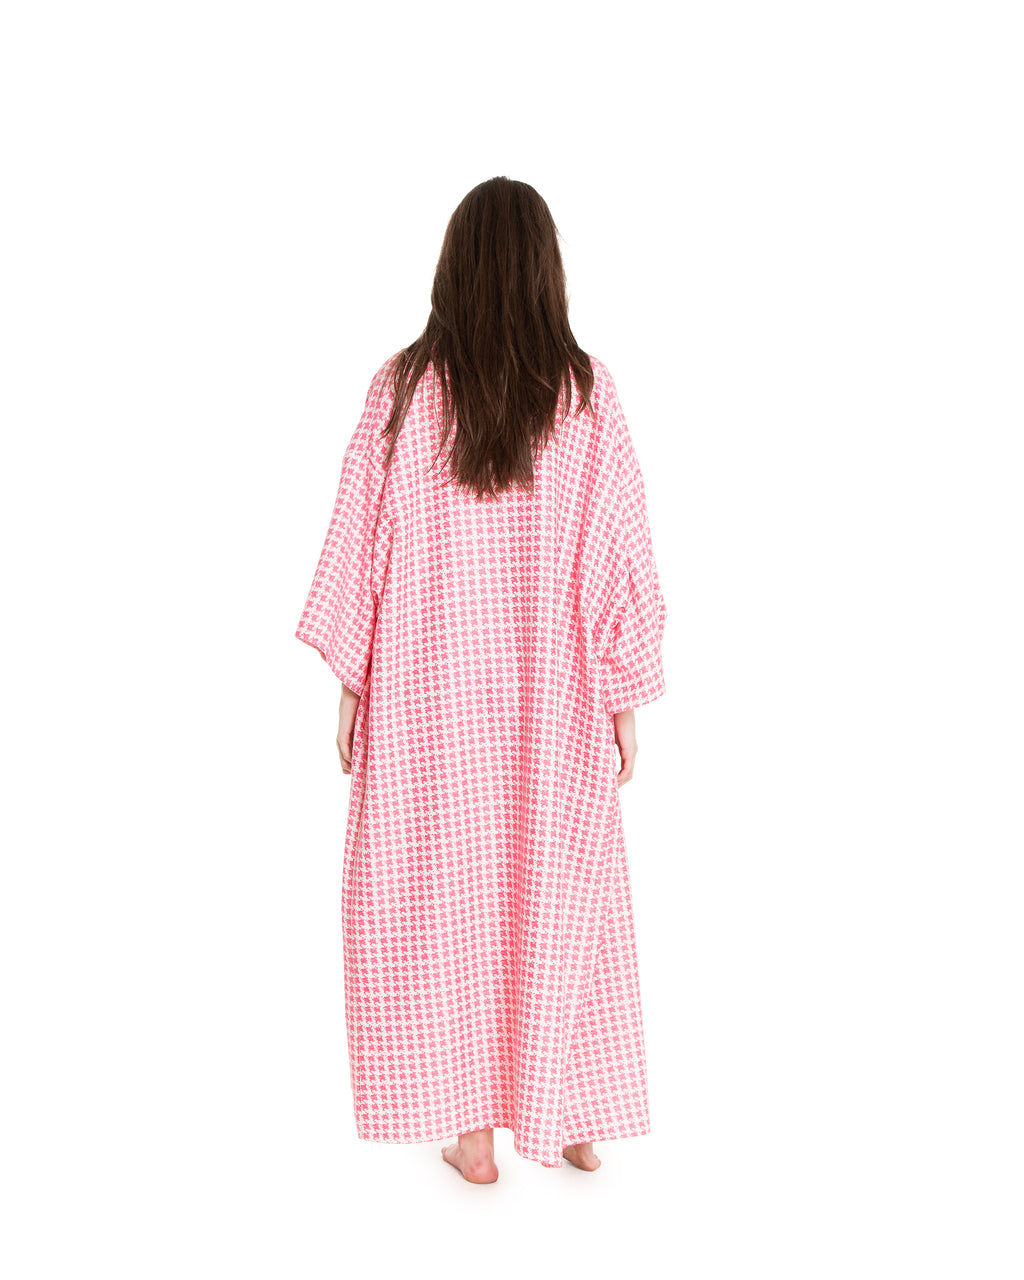 no. 4042 pink houndstooth duster